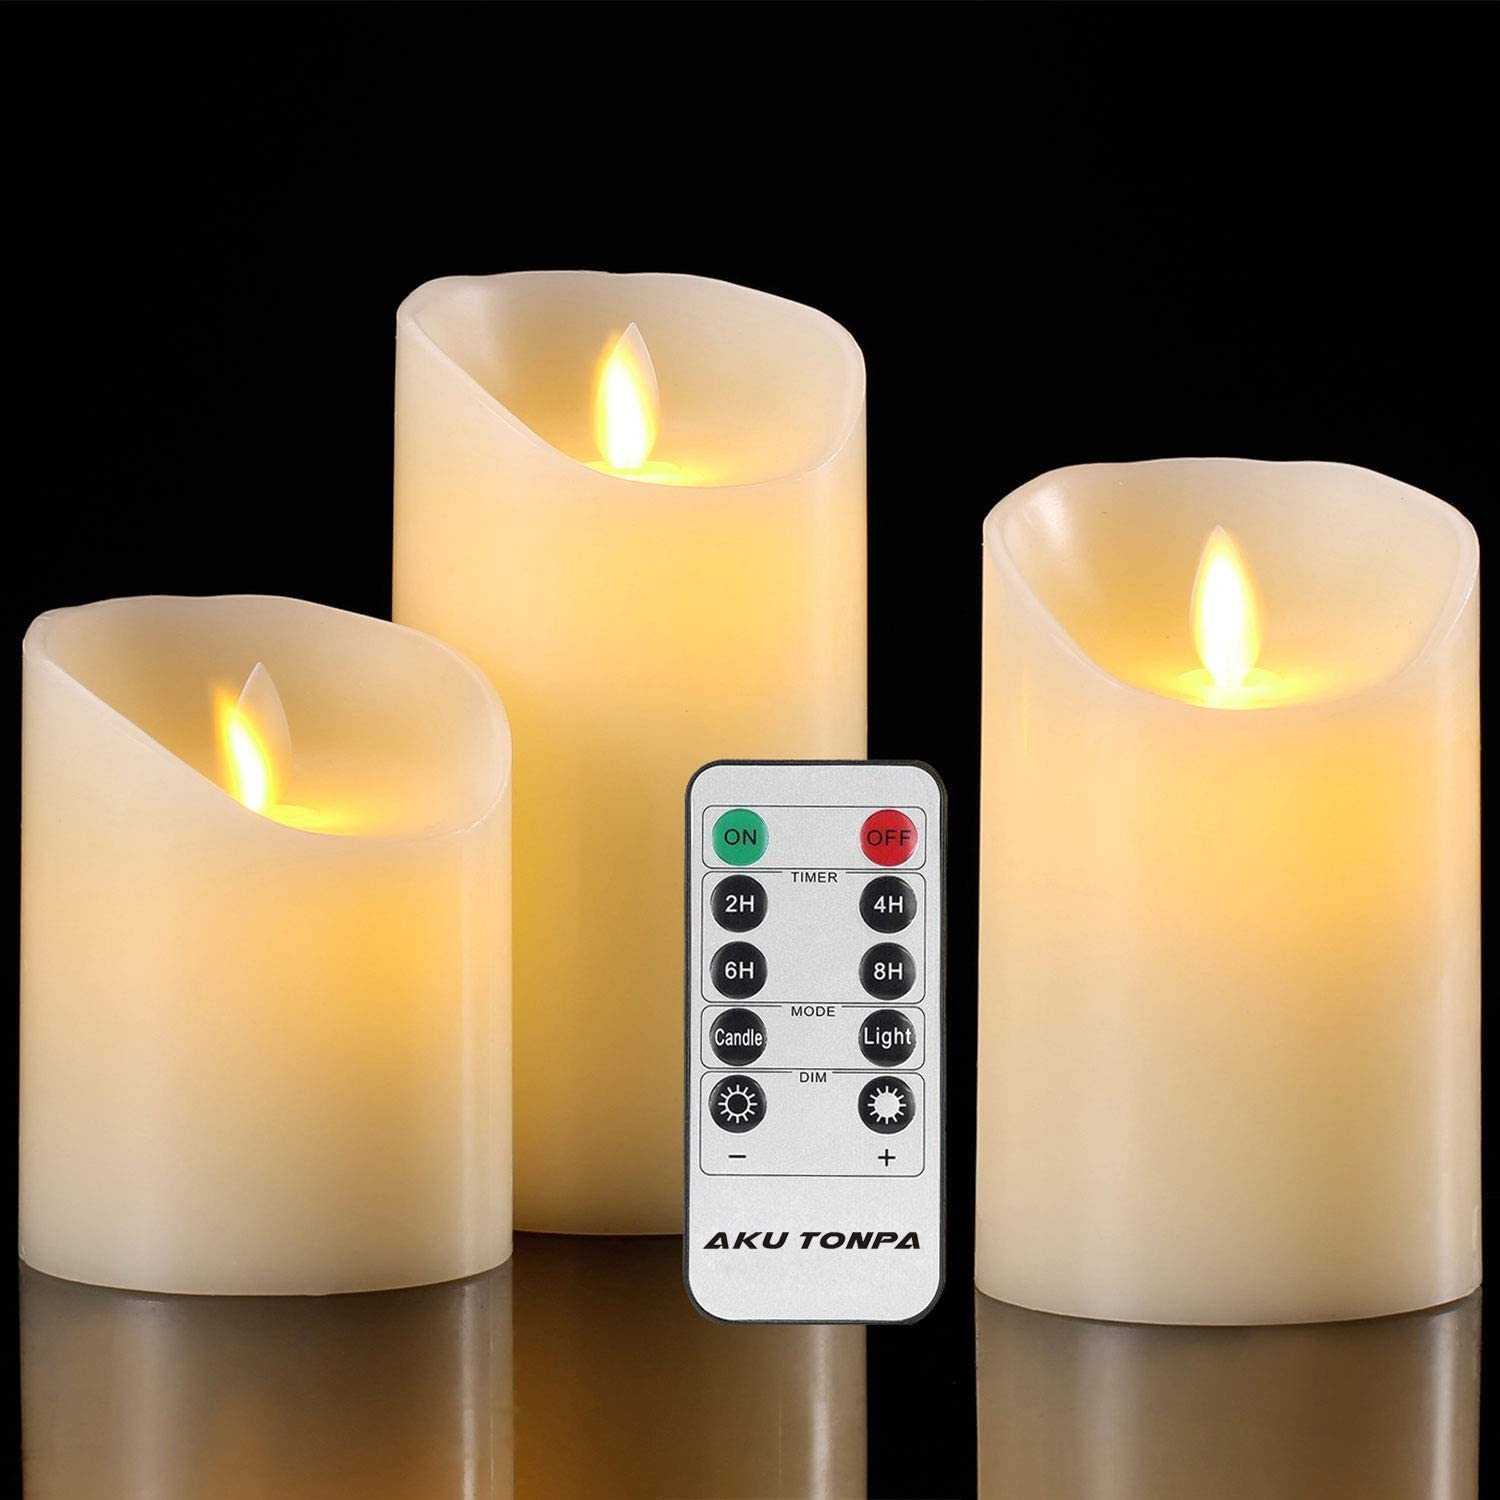 Aku Tonpa Flameless Candles Battery Operated Pillar Real Wax Flickering Moving Wick Electric LED Candle Gift Set with Remote Control Cycling 24 Hours Timer Pack of 3 (D  3.25  X H  4  5  6 )